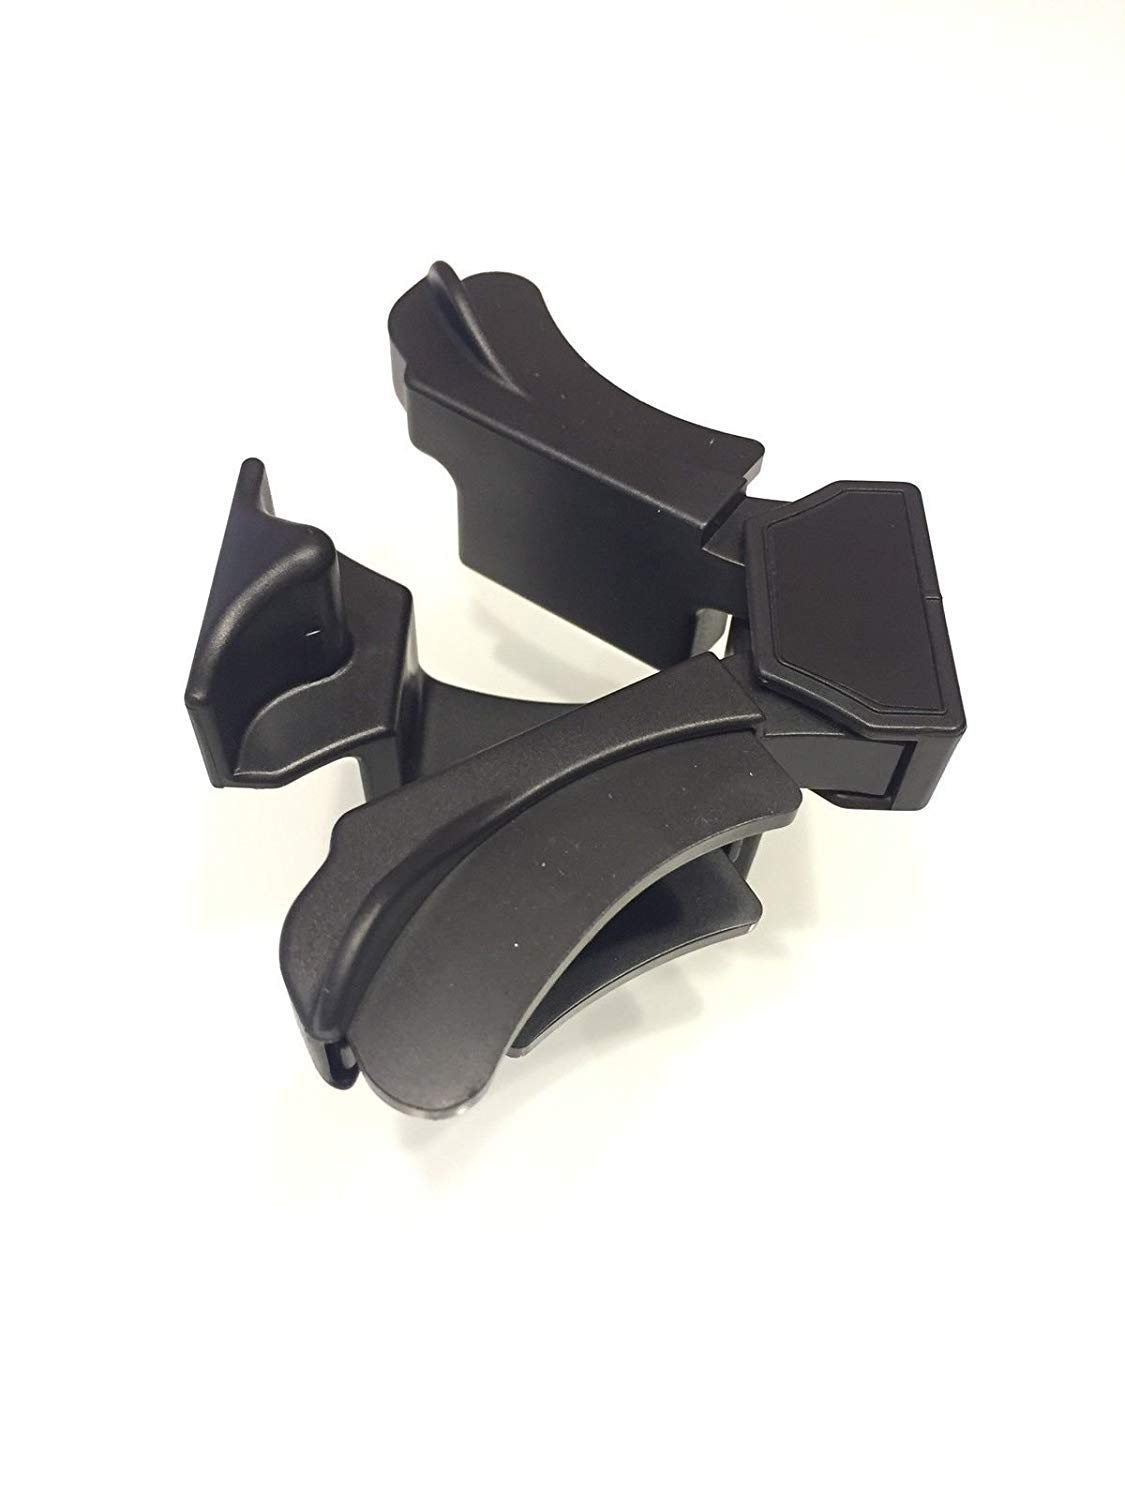 Trunknets Inc Center Console Cup Holder Insert Divider for Toyota Land Cruiser Fits 2000-2007 5559023075